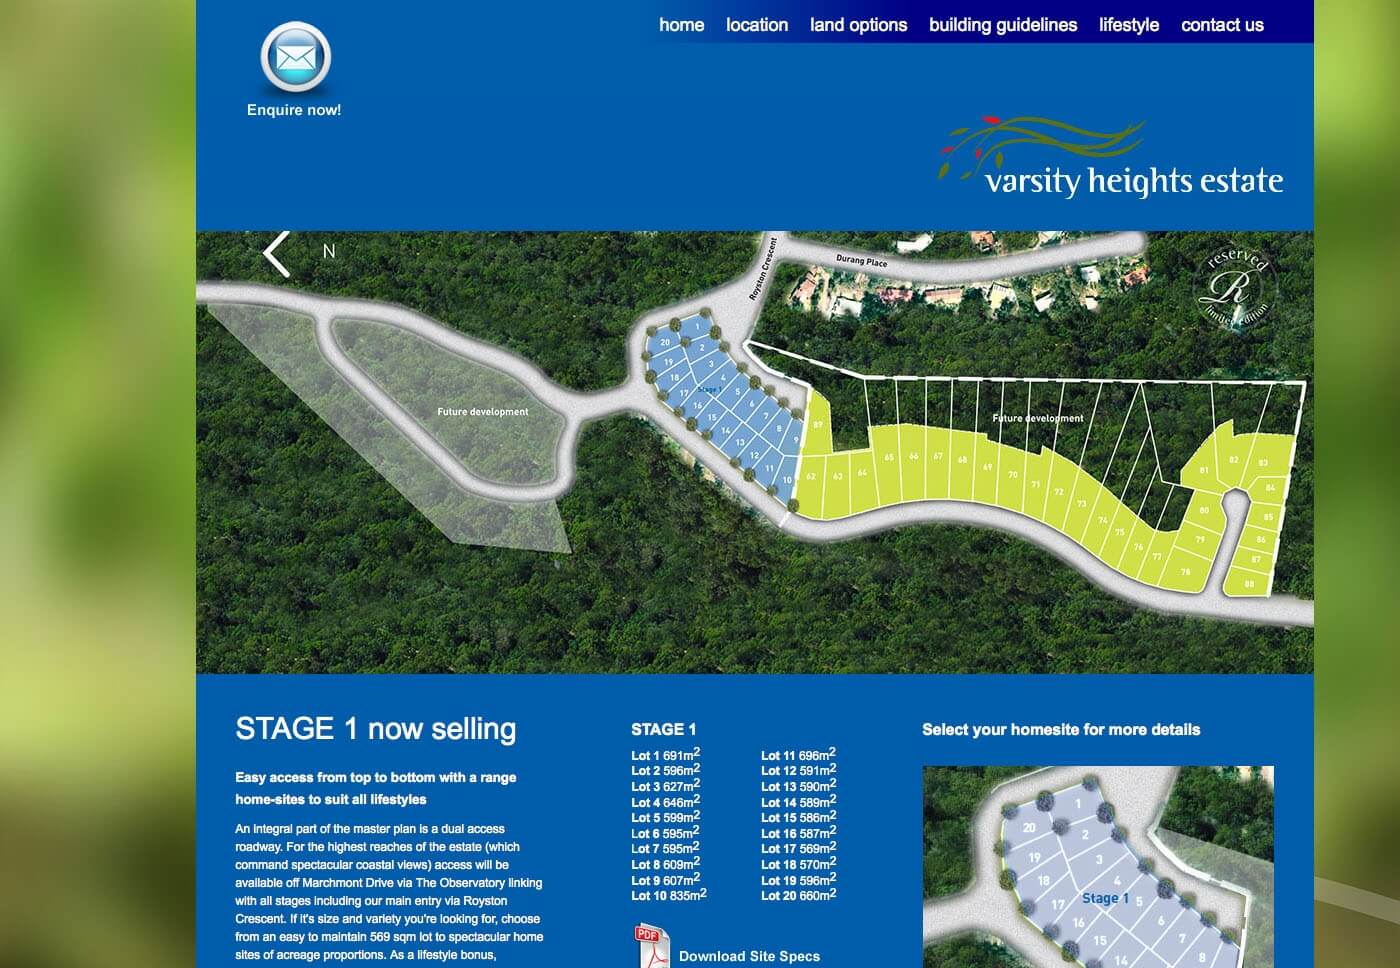 Able Video Varsity Heights Estate Website 02